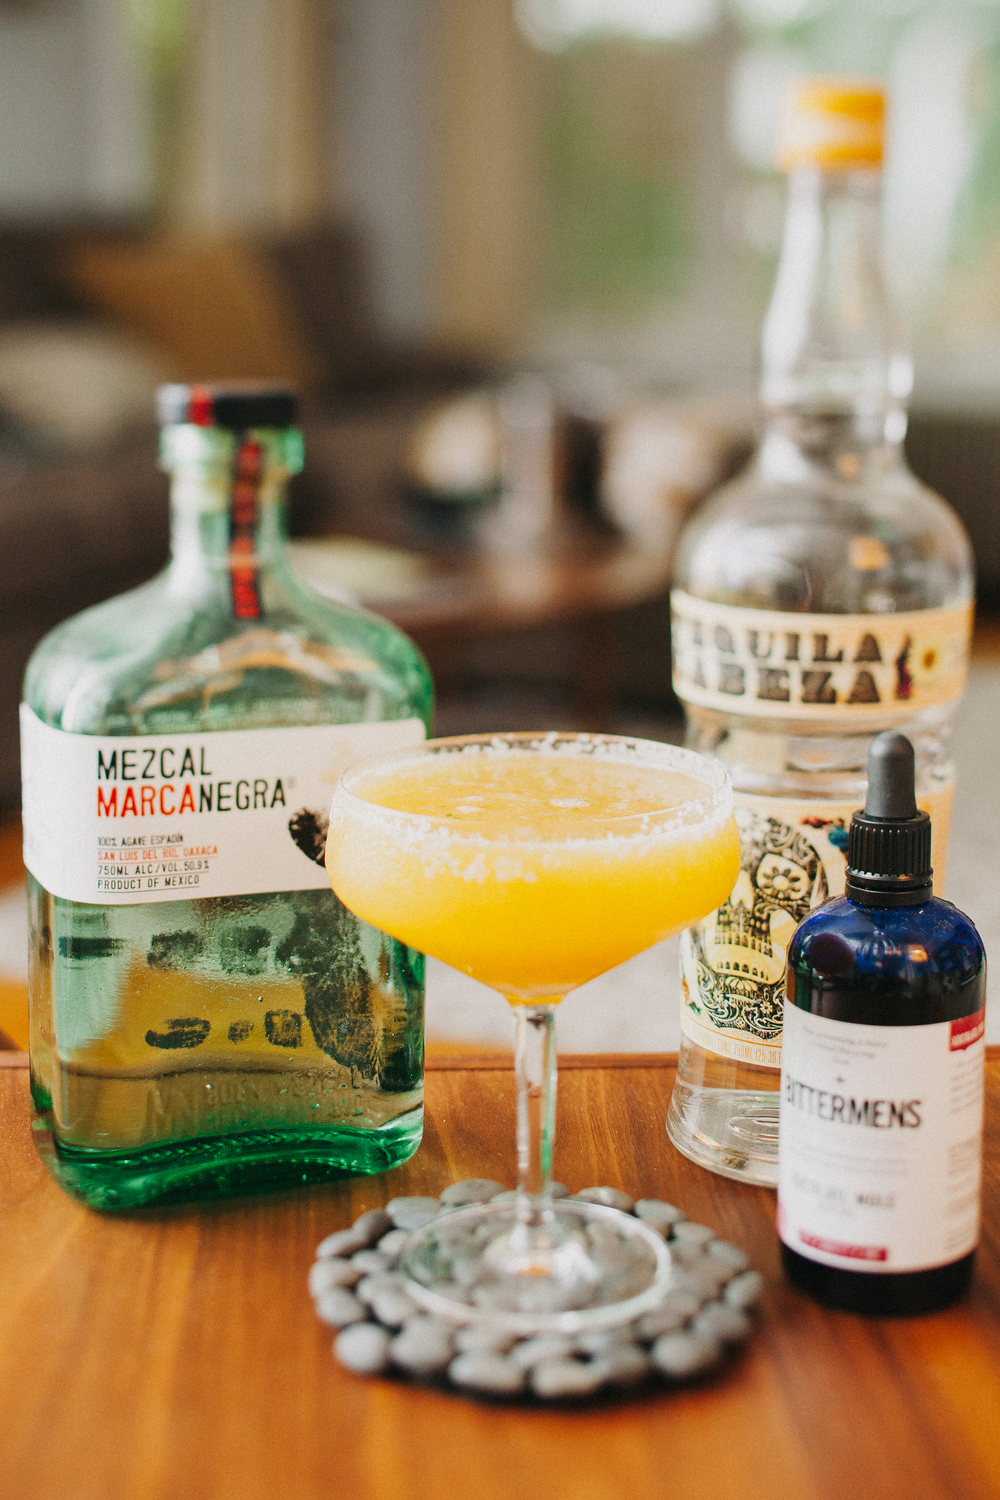 Peach margarita with mezcal and hellfire bitters